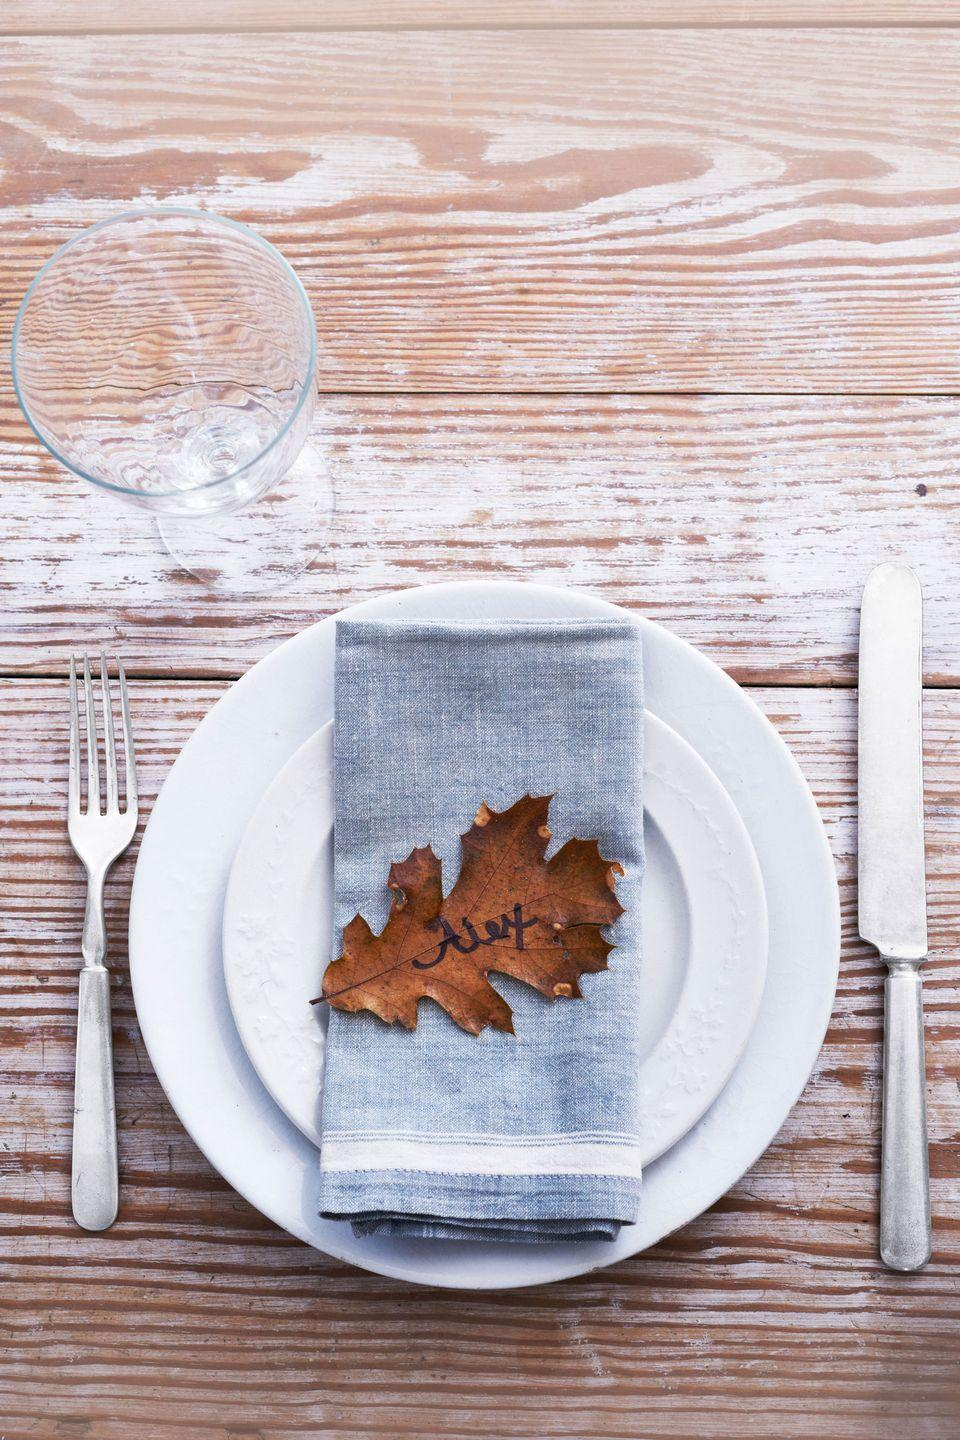 "<p>""Leaves in brilliant autumn shades stand on their own—just grab a pen,"" notes Julie Murphy, owner of <a href=""http://www.jackandlulu.com/"" rel=""nofollow noopener"" target=""_blank"" data-ylk=""slk:Jack and Lulu"" class=""link rapid-noclick-resp"">Jack and Lulu</a> stationery. </p><p><a class=""link rapid-noclick-resp"" href=""https://www.amazon.com/Kissitty-100-Piece-Unfinished-AntiqueWhite-1-96x1-02/dp/B07BFS8PDF?tag=syn-yahoo-20&ascsubtag=%5Bartid%7C10050.g.1538%5Bsrc%7Cyahoo-us"" rel=""nofollow noopener"" target=""_blank"" data-ylk=""slk:SHOP CRAFT LEAVES"">SHOP CRAFT LEAVES</a></p>"